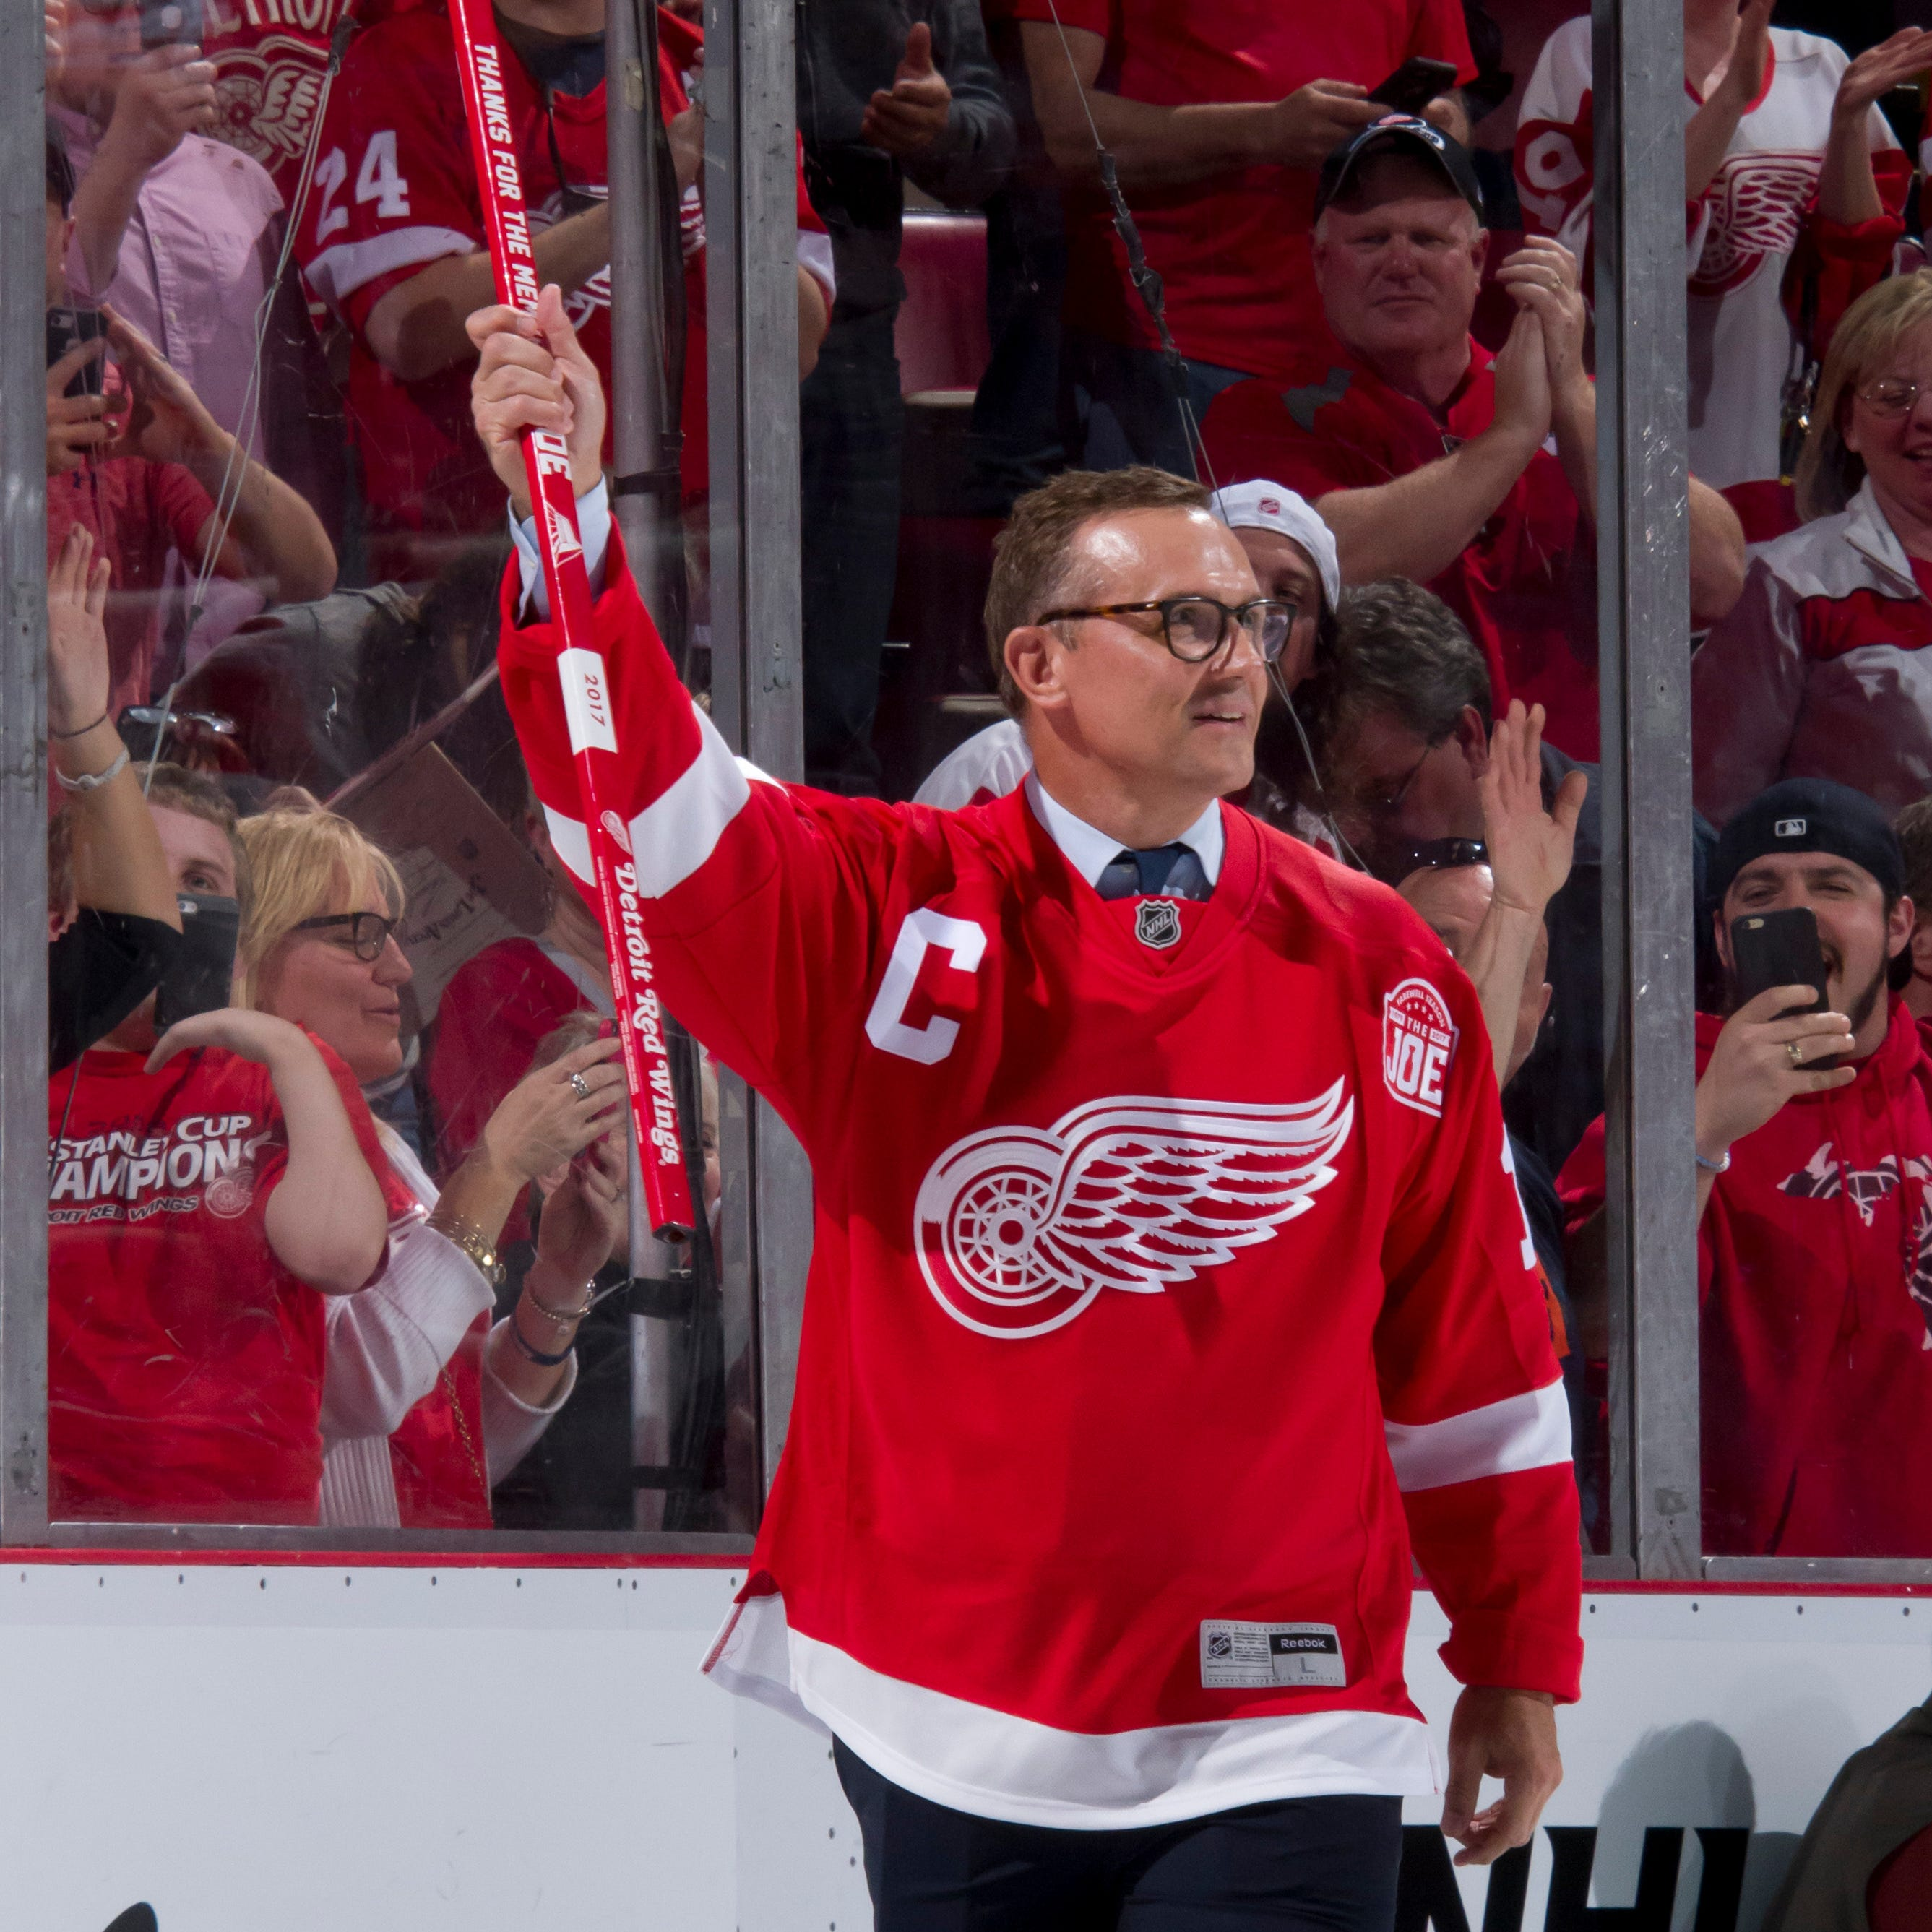 The Captain returns: Red Wings to name Steve Yzerman new general manager